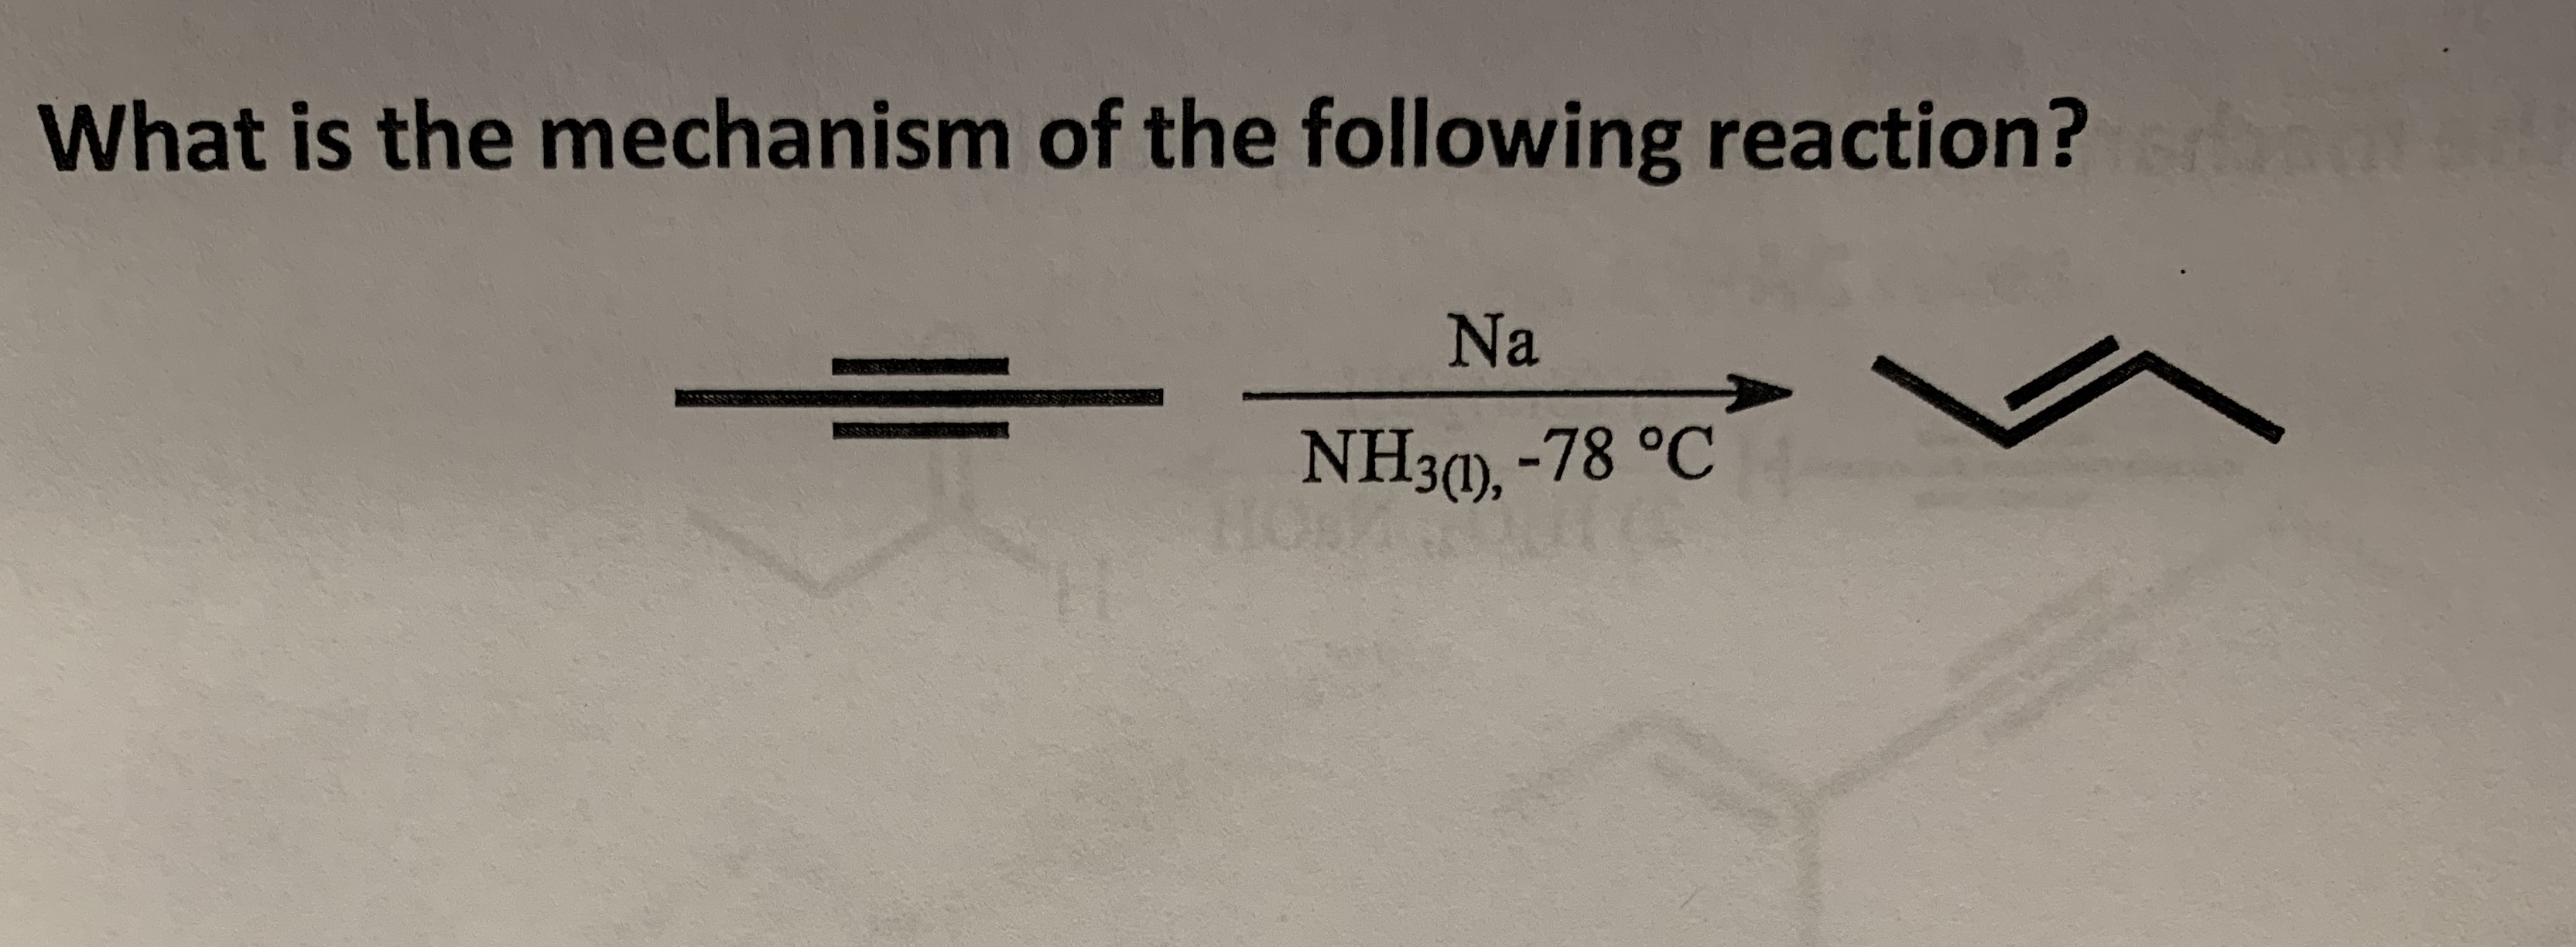 What is the mechanism of the following reaction? Na NH30), -78 °C